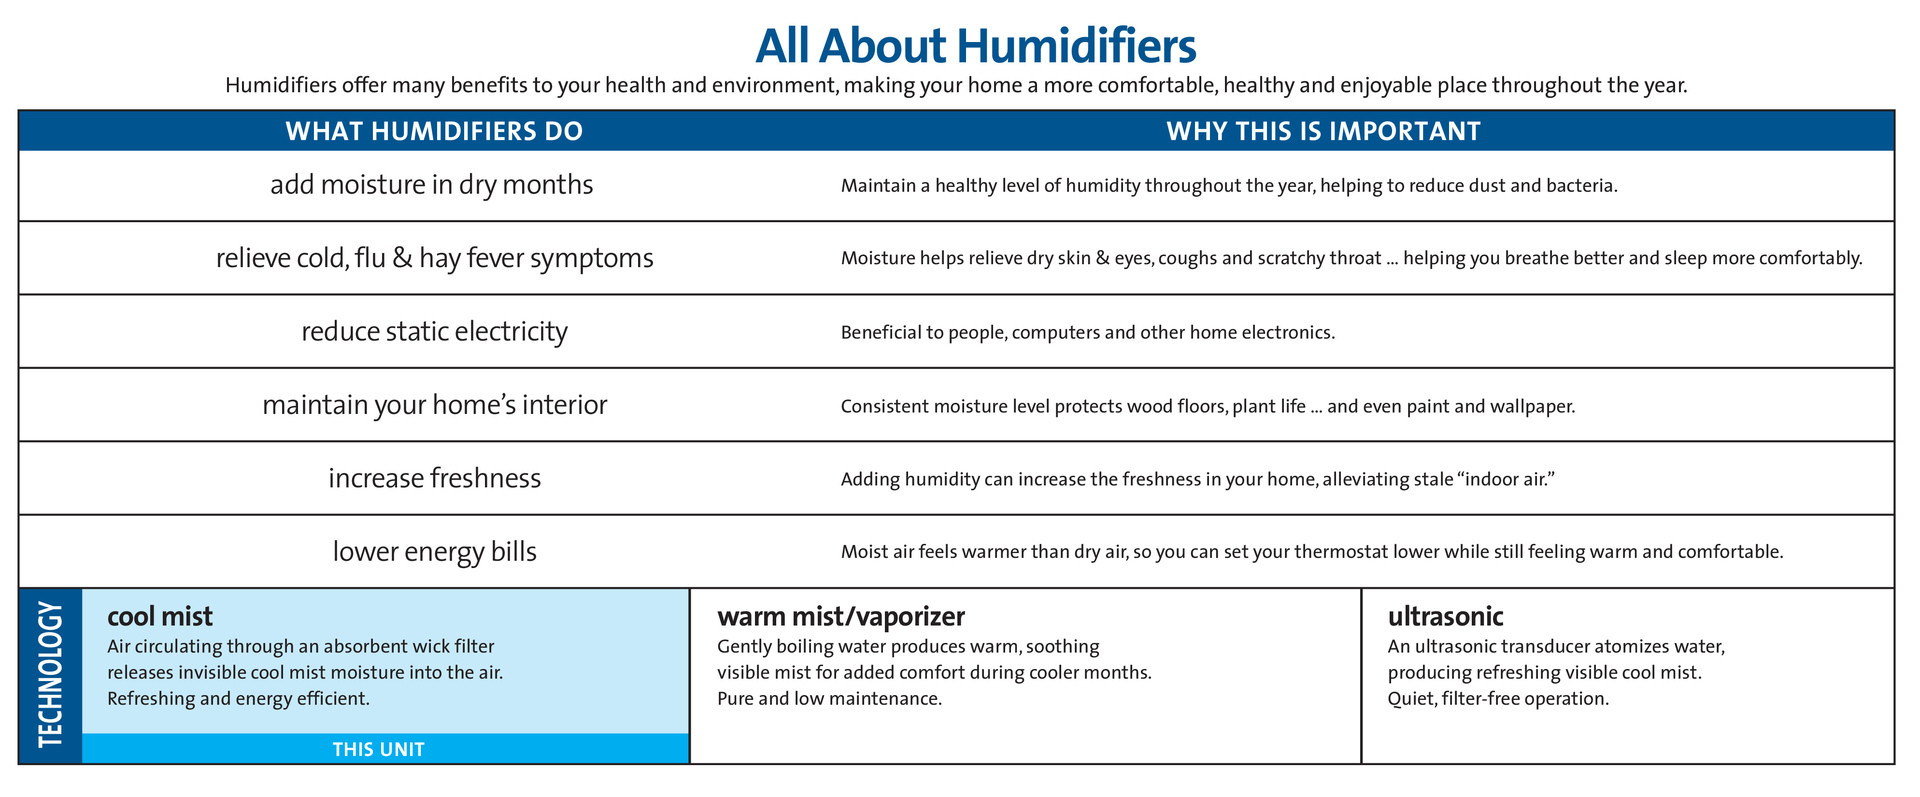 recommended humidity level for hardwood floors of holmes cool mist humidifier with shatterproof tank by office depot within moisture level protects wood floors plant life and even furniture musical instruments paint and wallpaper • increase freshness adding humidity can